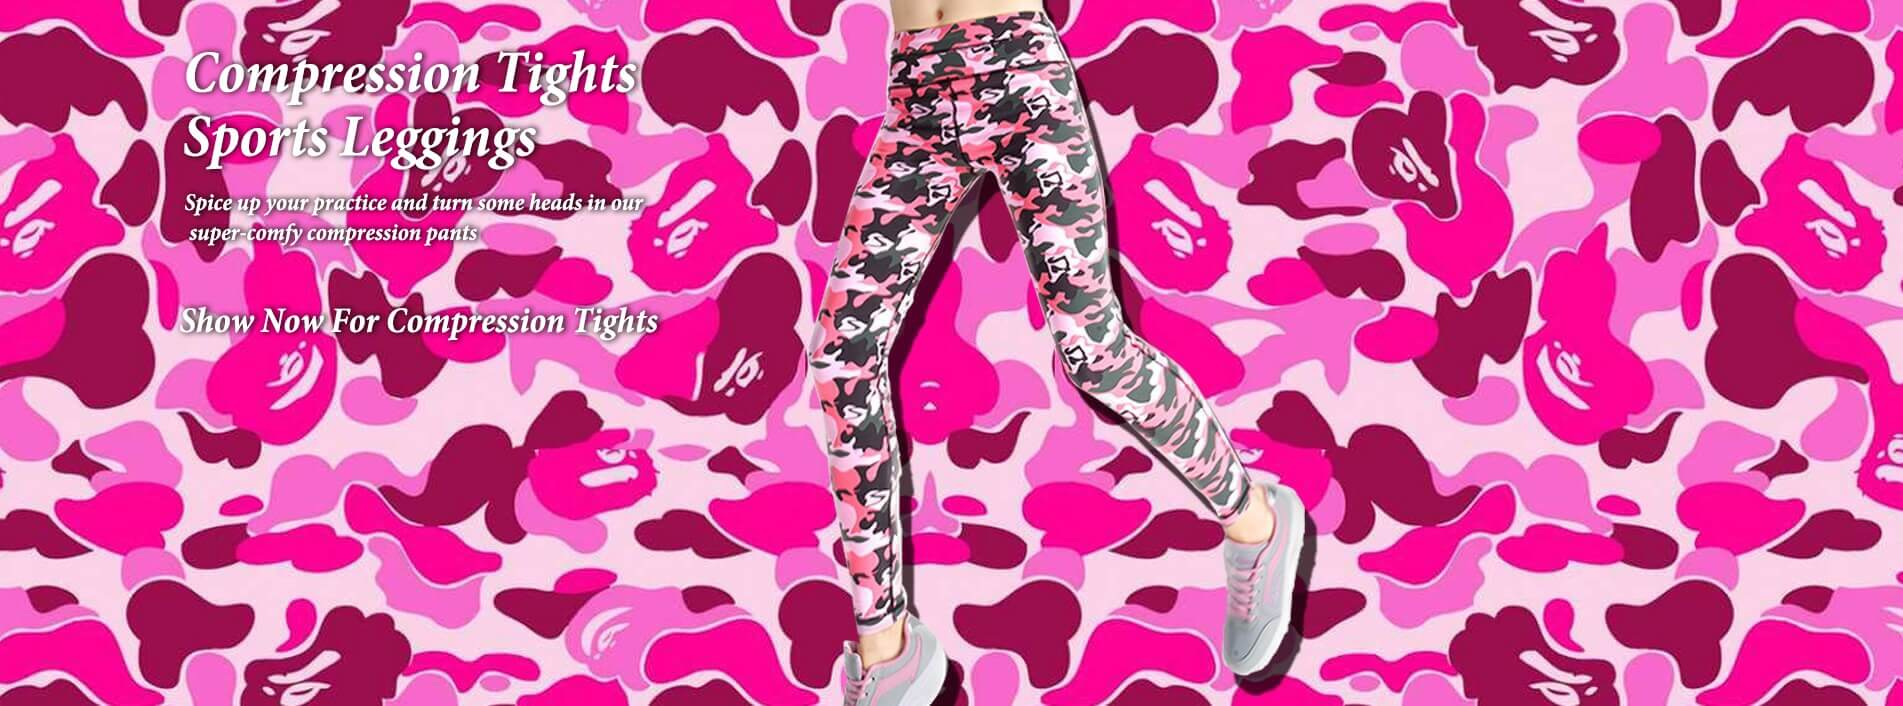 Compression tights sports leggings spices up your practice and turn some heads in our super-comfy compression pants for AK ALIEN